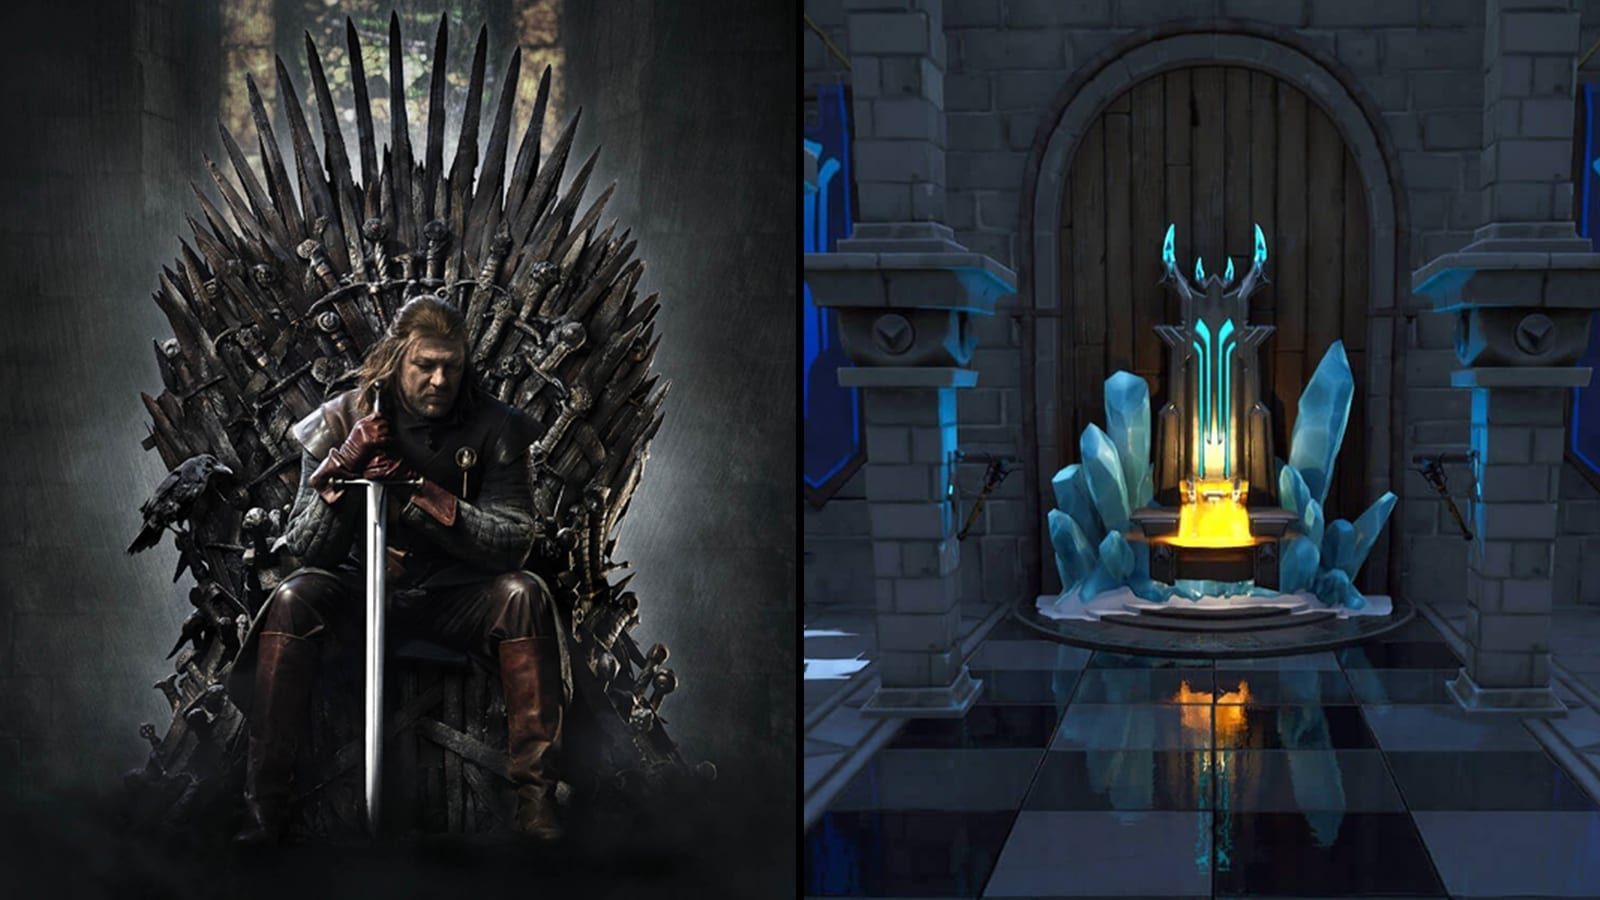 game-of-thrones-iron-throne-fortnite-ice-king-throne